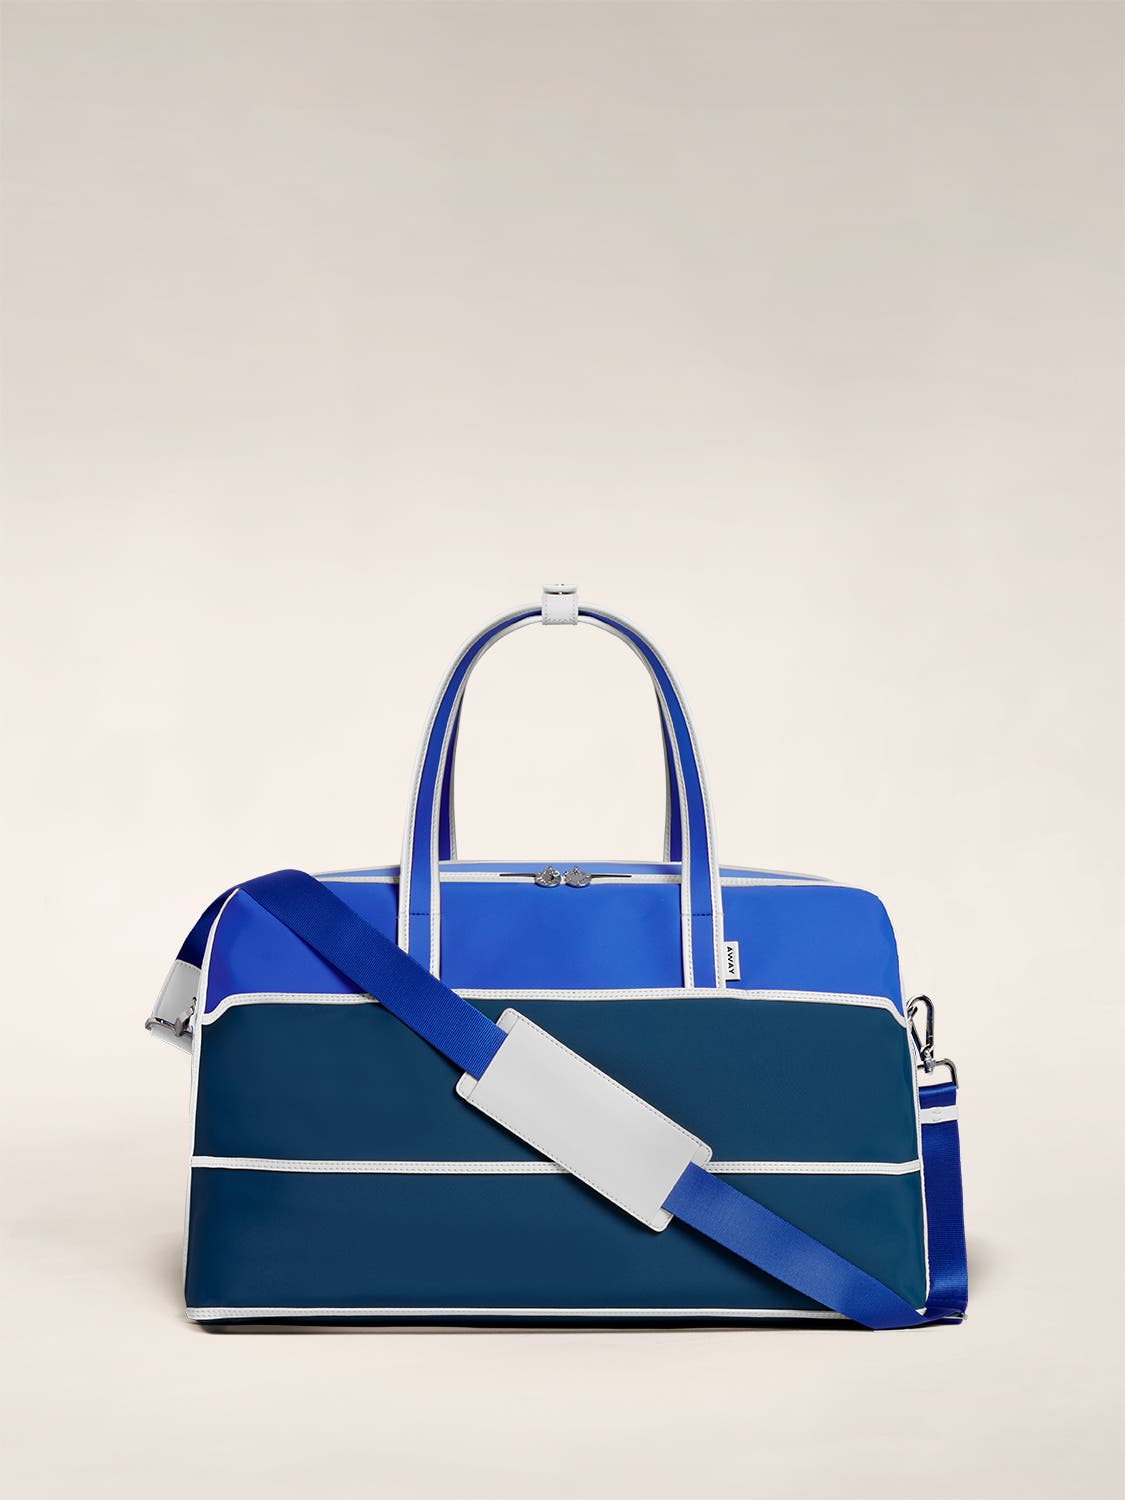 The Large Everywhere Bag by Ji Won Choi in blue geometric patterns and a shoulder strap